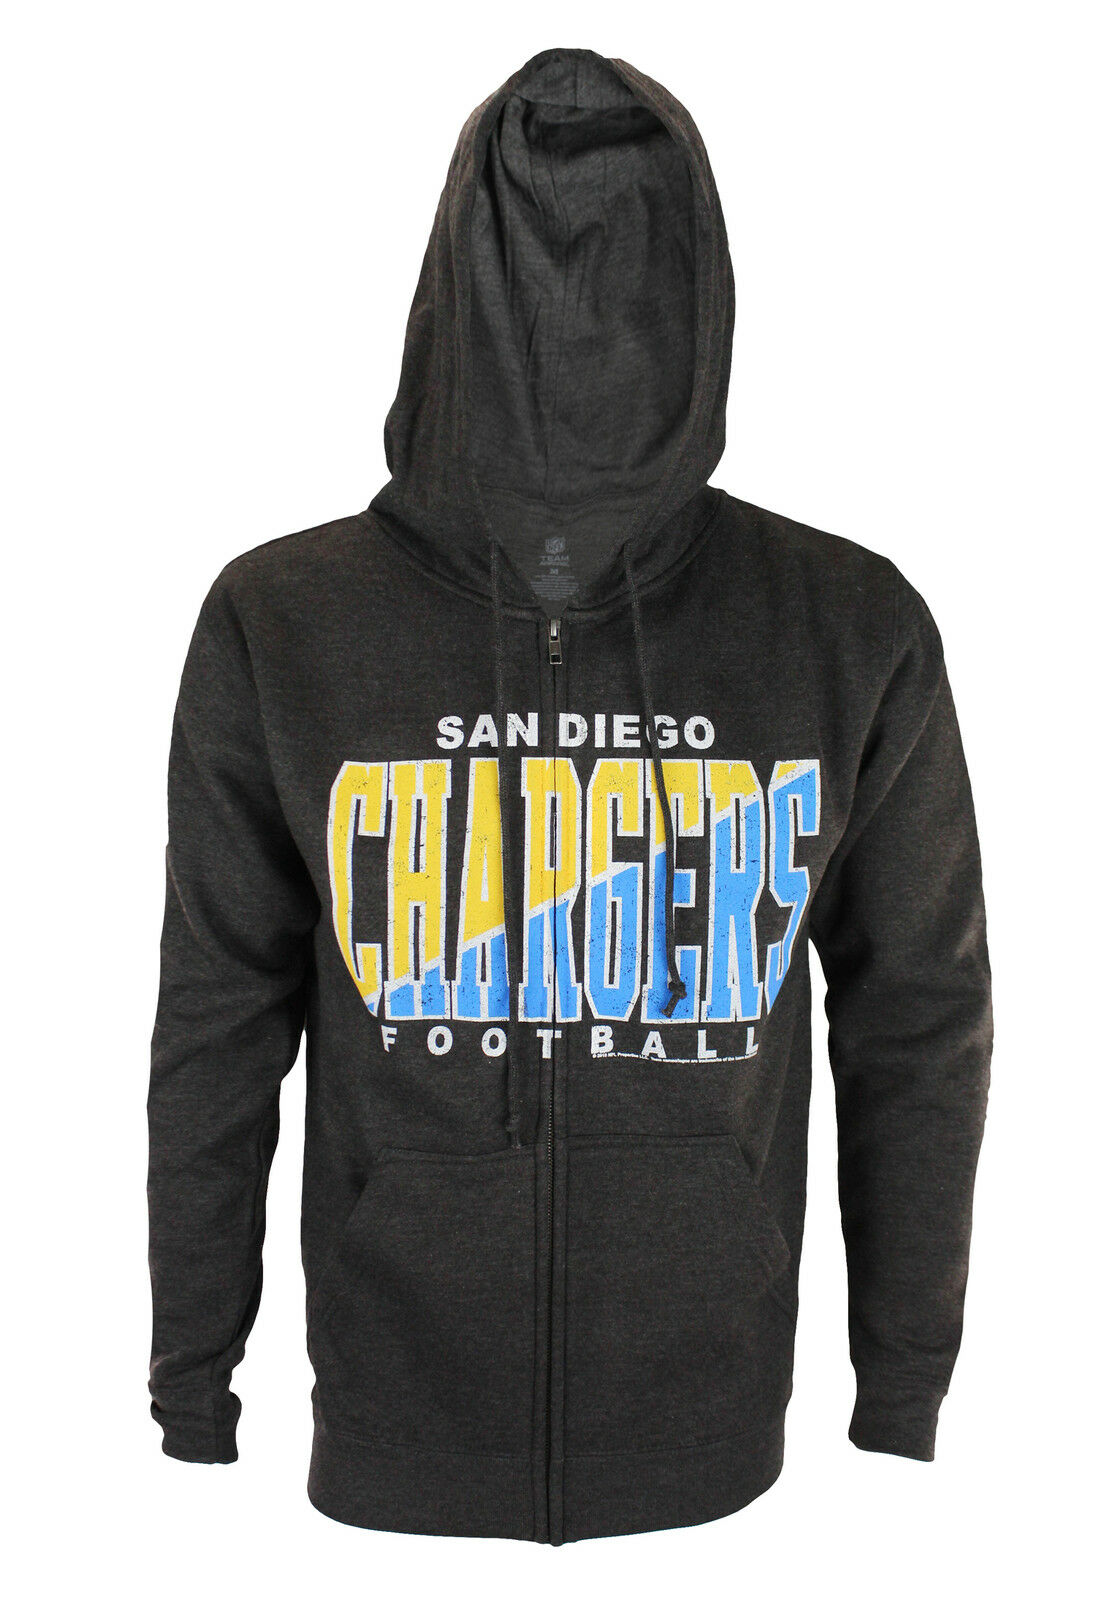 San Diego Chargers NFL Football  Herren Split Formation Fleece Hoodie, grau